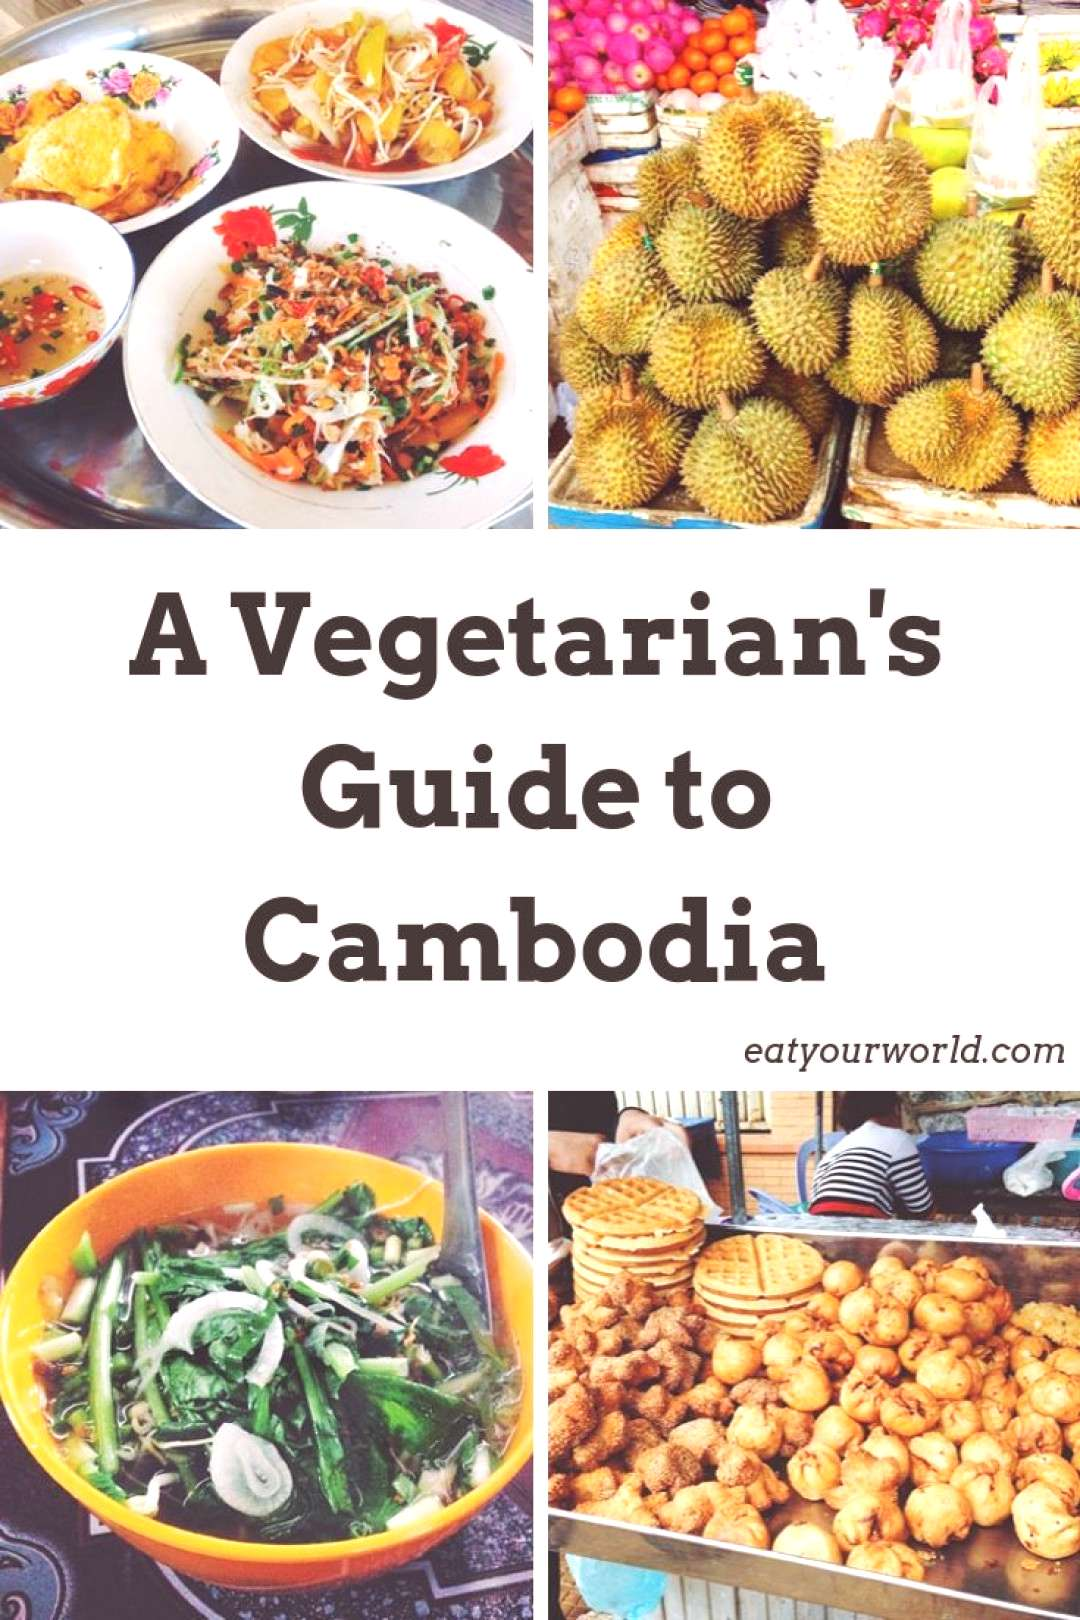 A Vegetarians Guide to Cambodia (Updated) - Vegetarian Foods in Cambodia | Eat Your World Blog A V